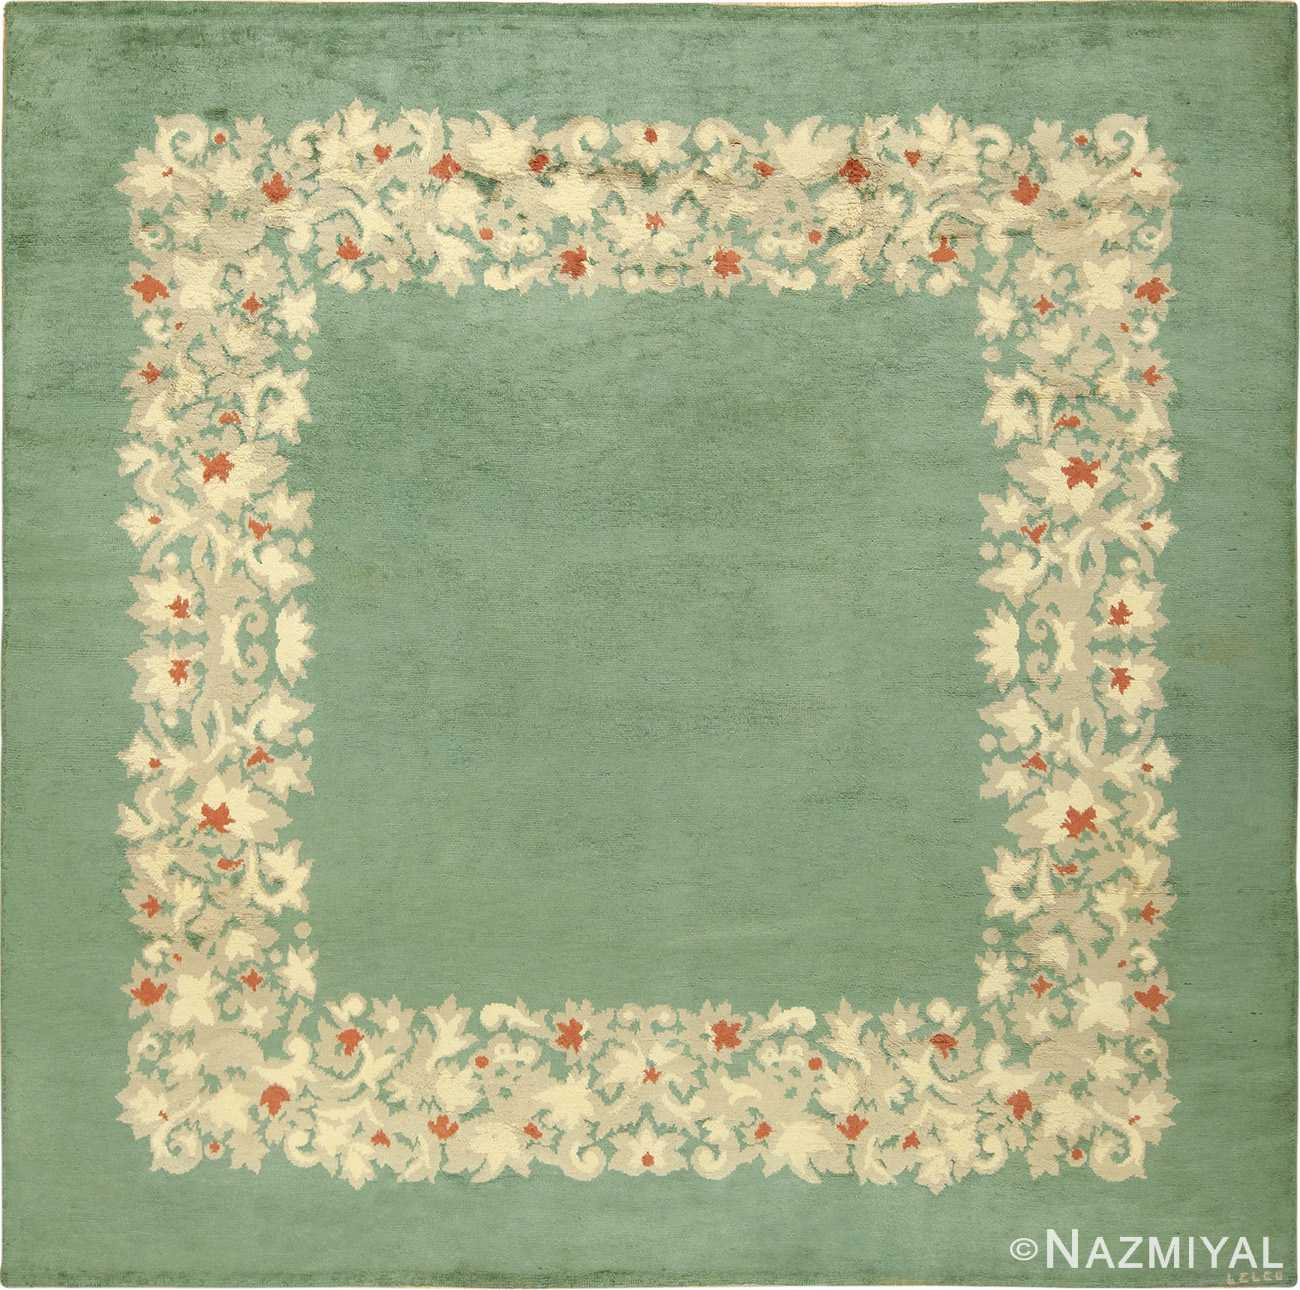 Antique Green Color Square French Art Deco Rug by Leleu 49690 by Nazmiyal